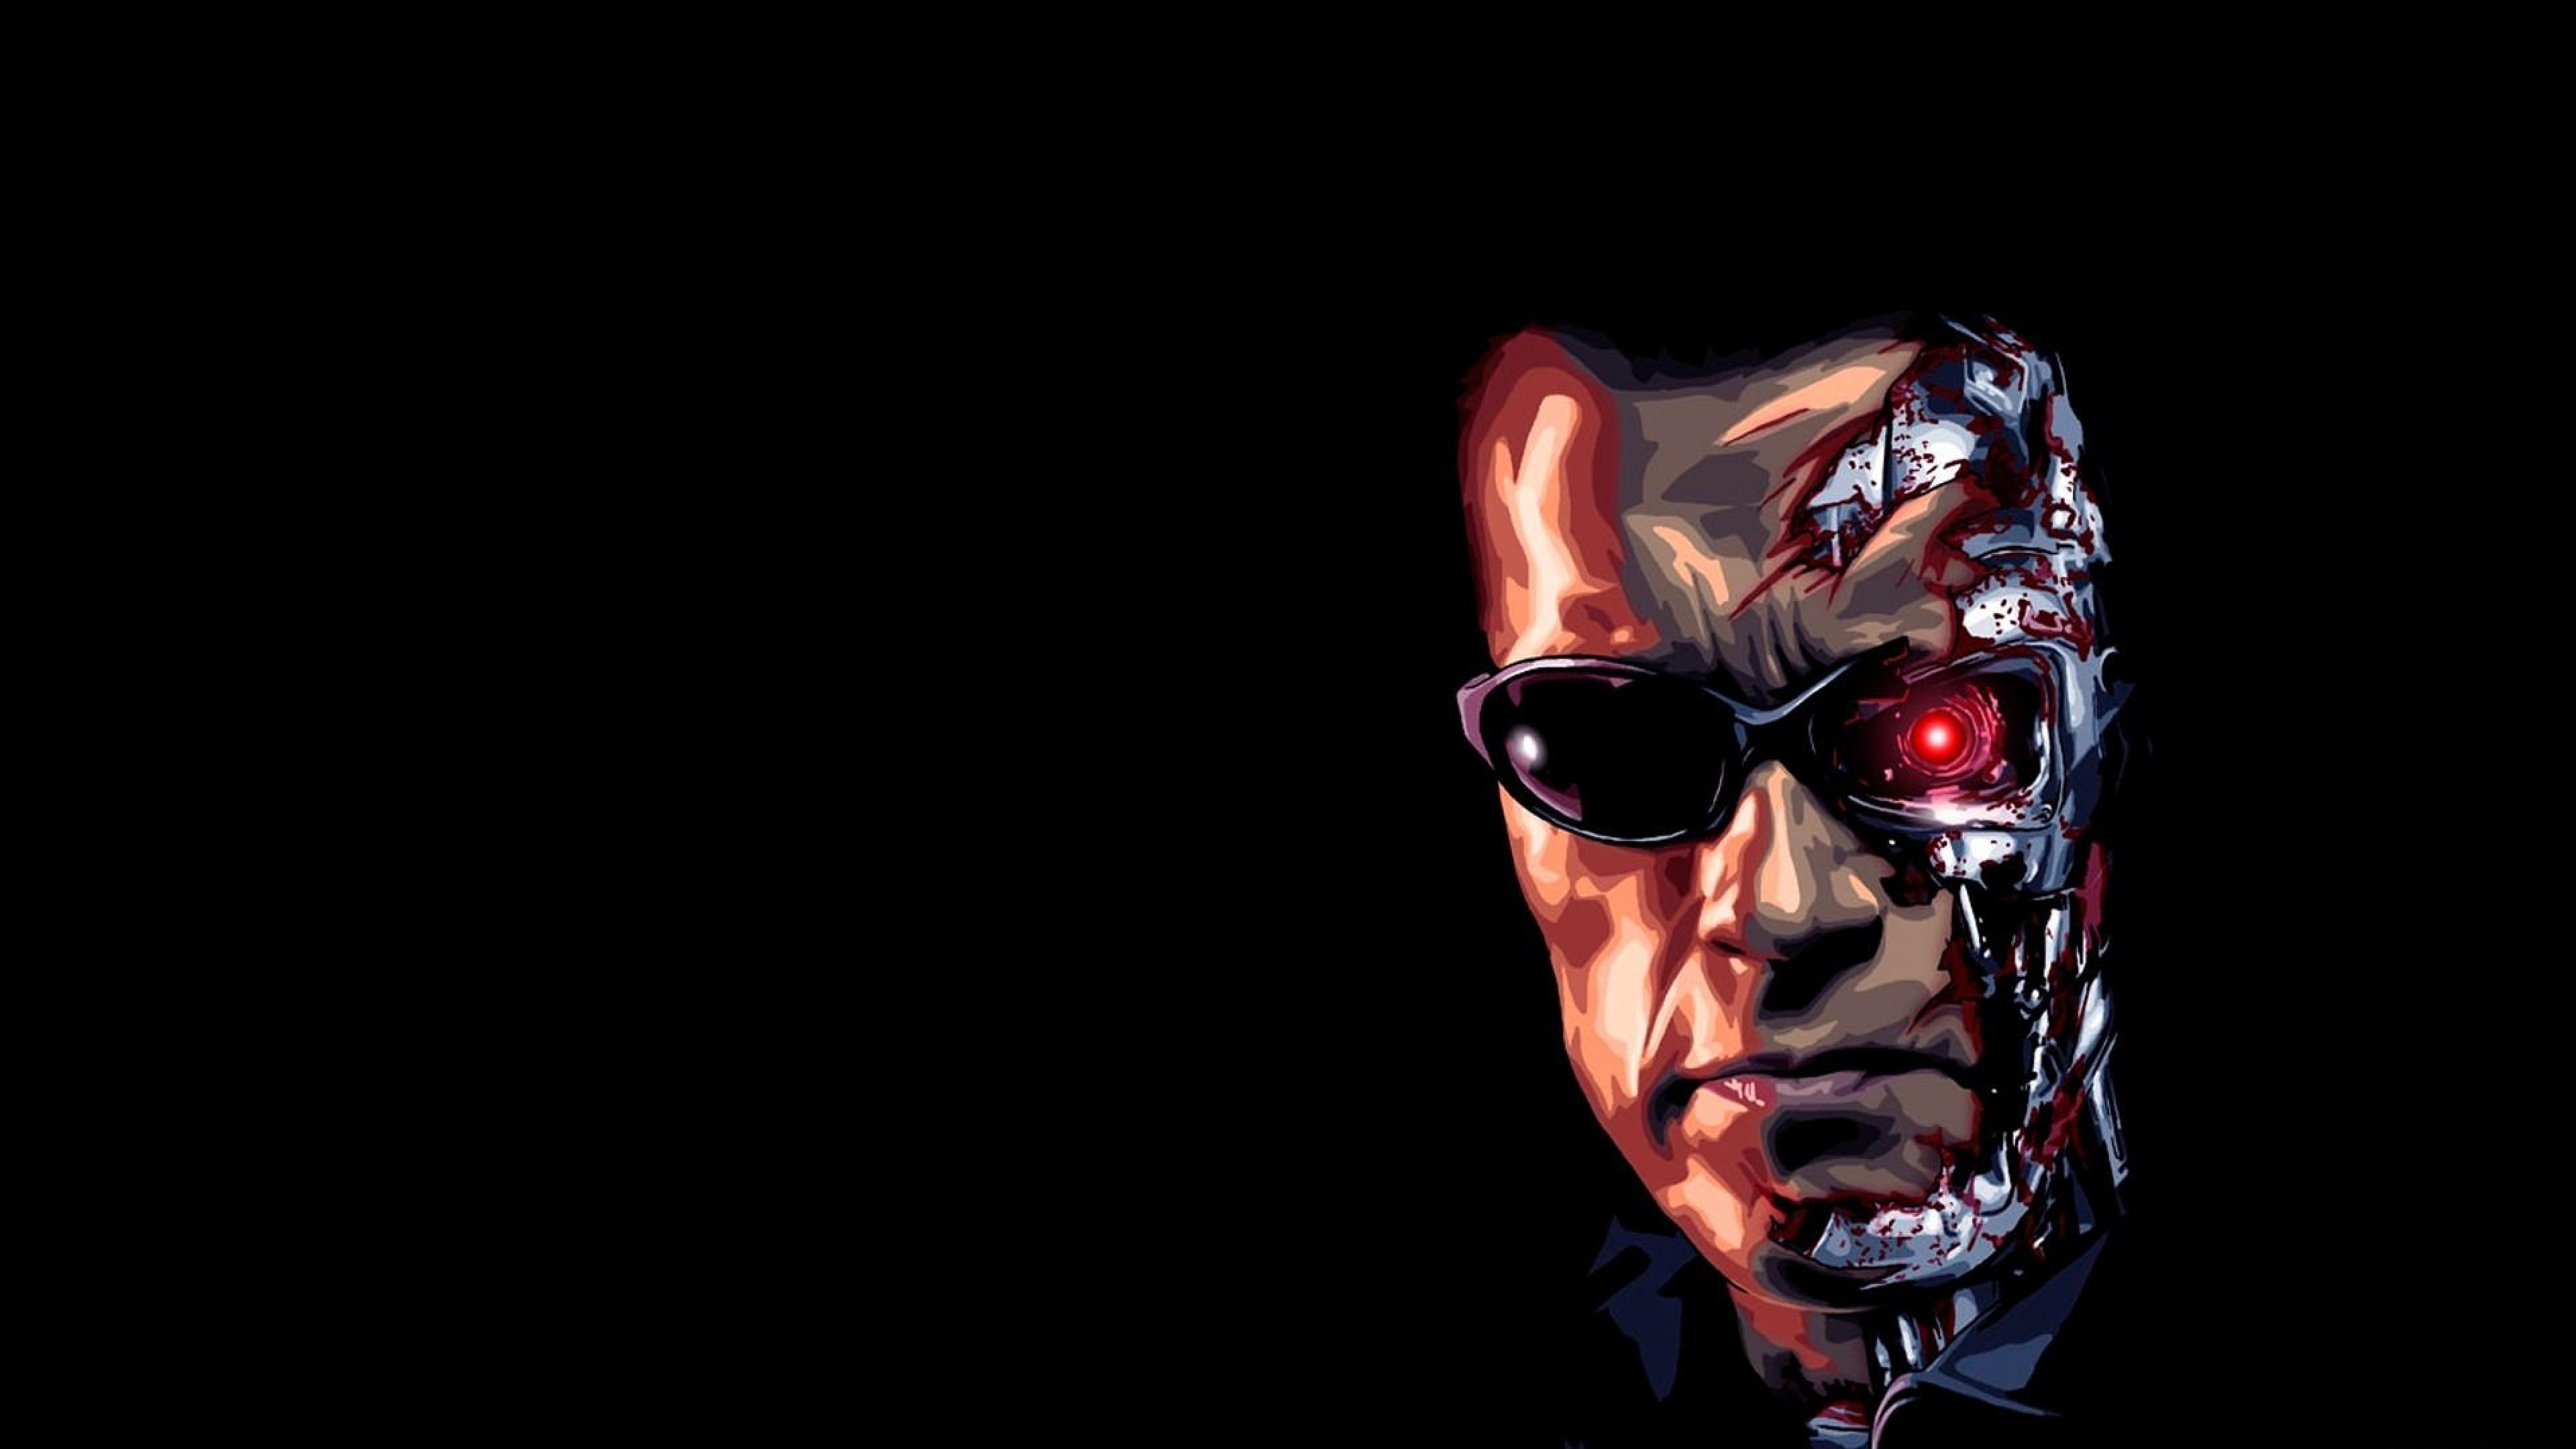 The Terminator Wallpapers and Background Images   stmednet 3840x2160